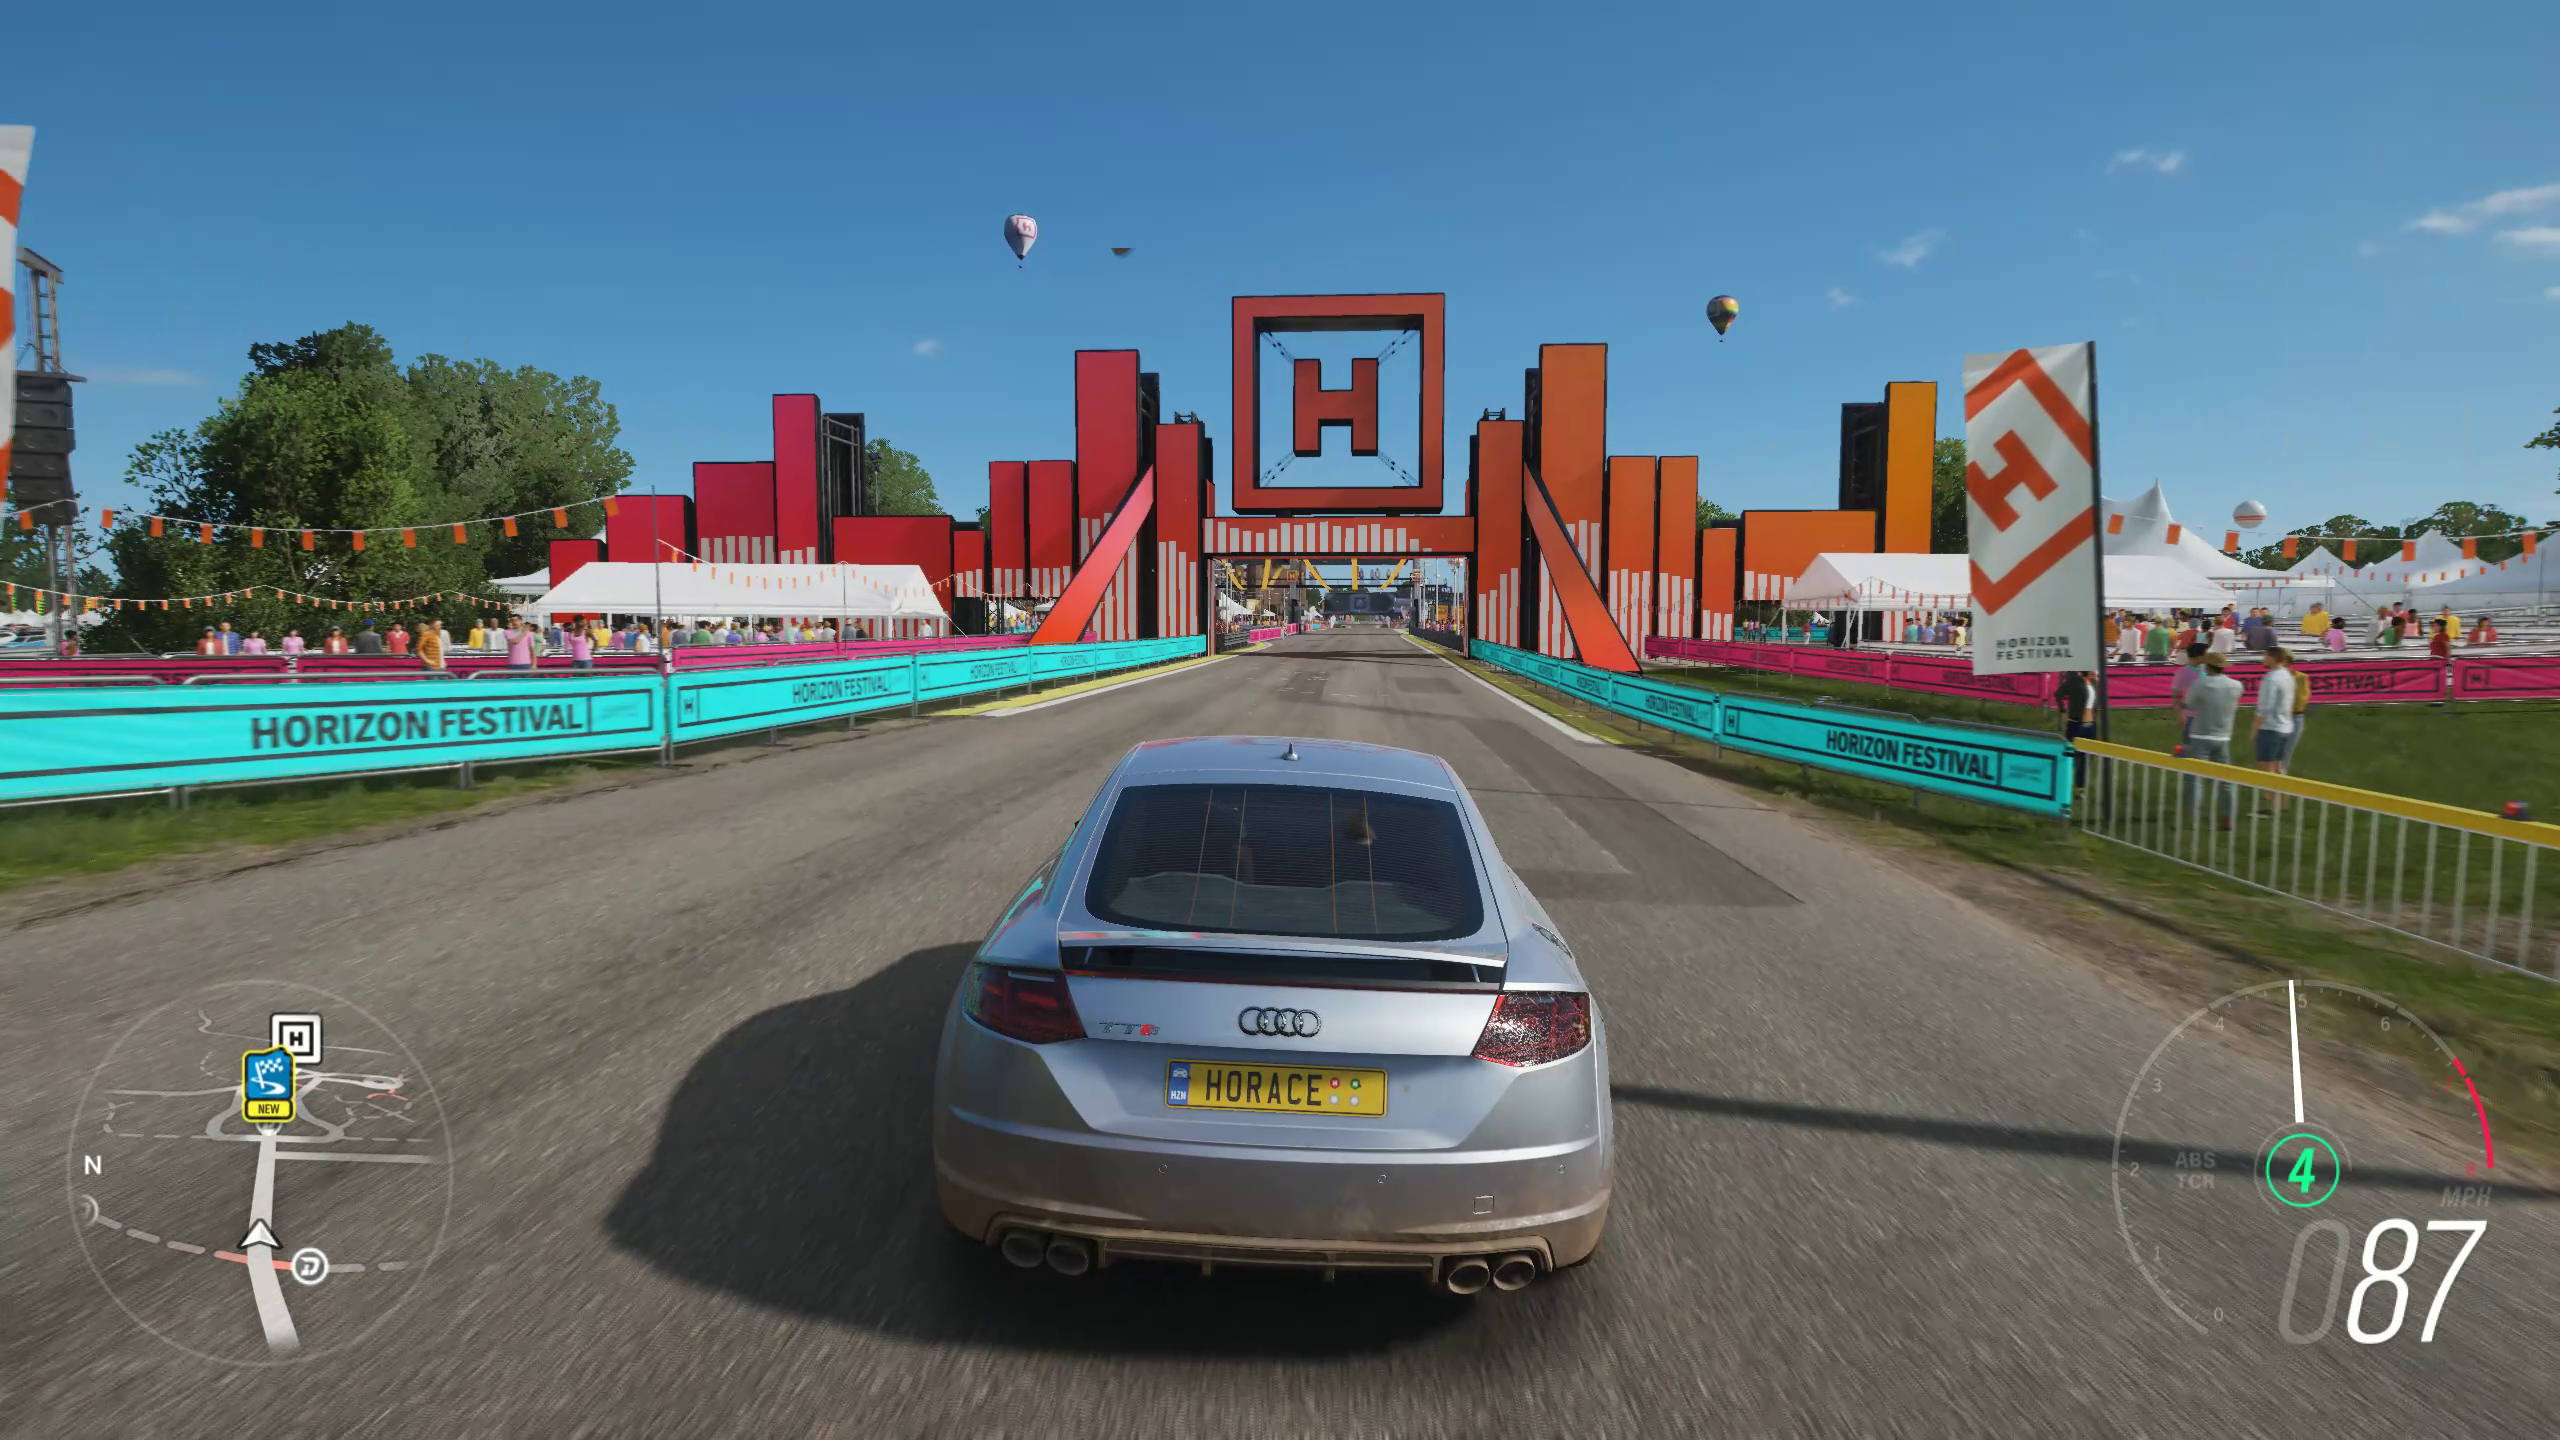 Forza Horizon 4 graphics performance: How to get the best